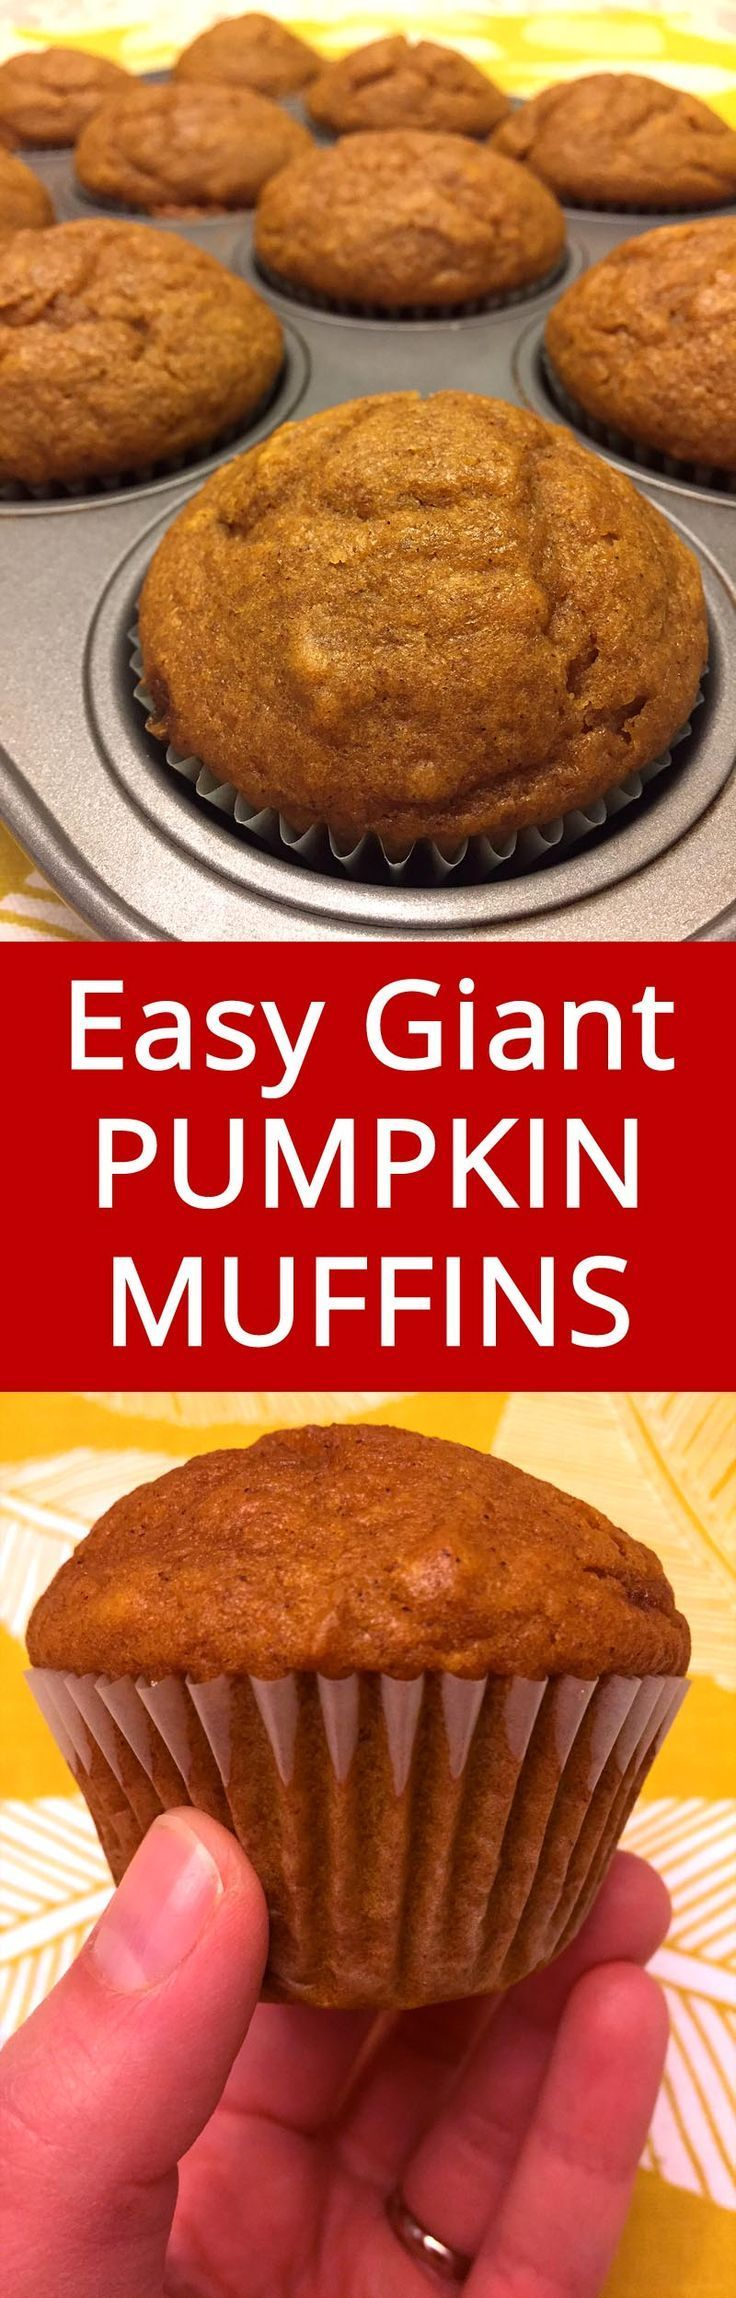 These pumpkin muffins are truly huge and moist, and the texture is best ever! I love these muffins! | MelanieCooks.com